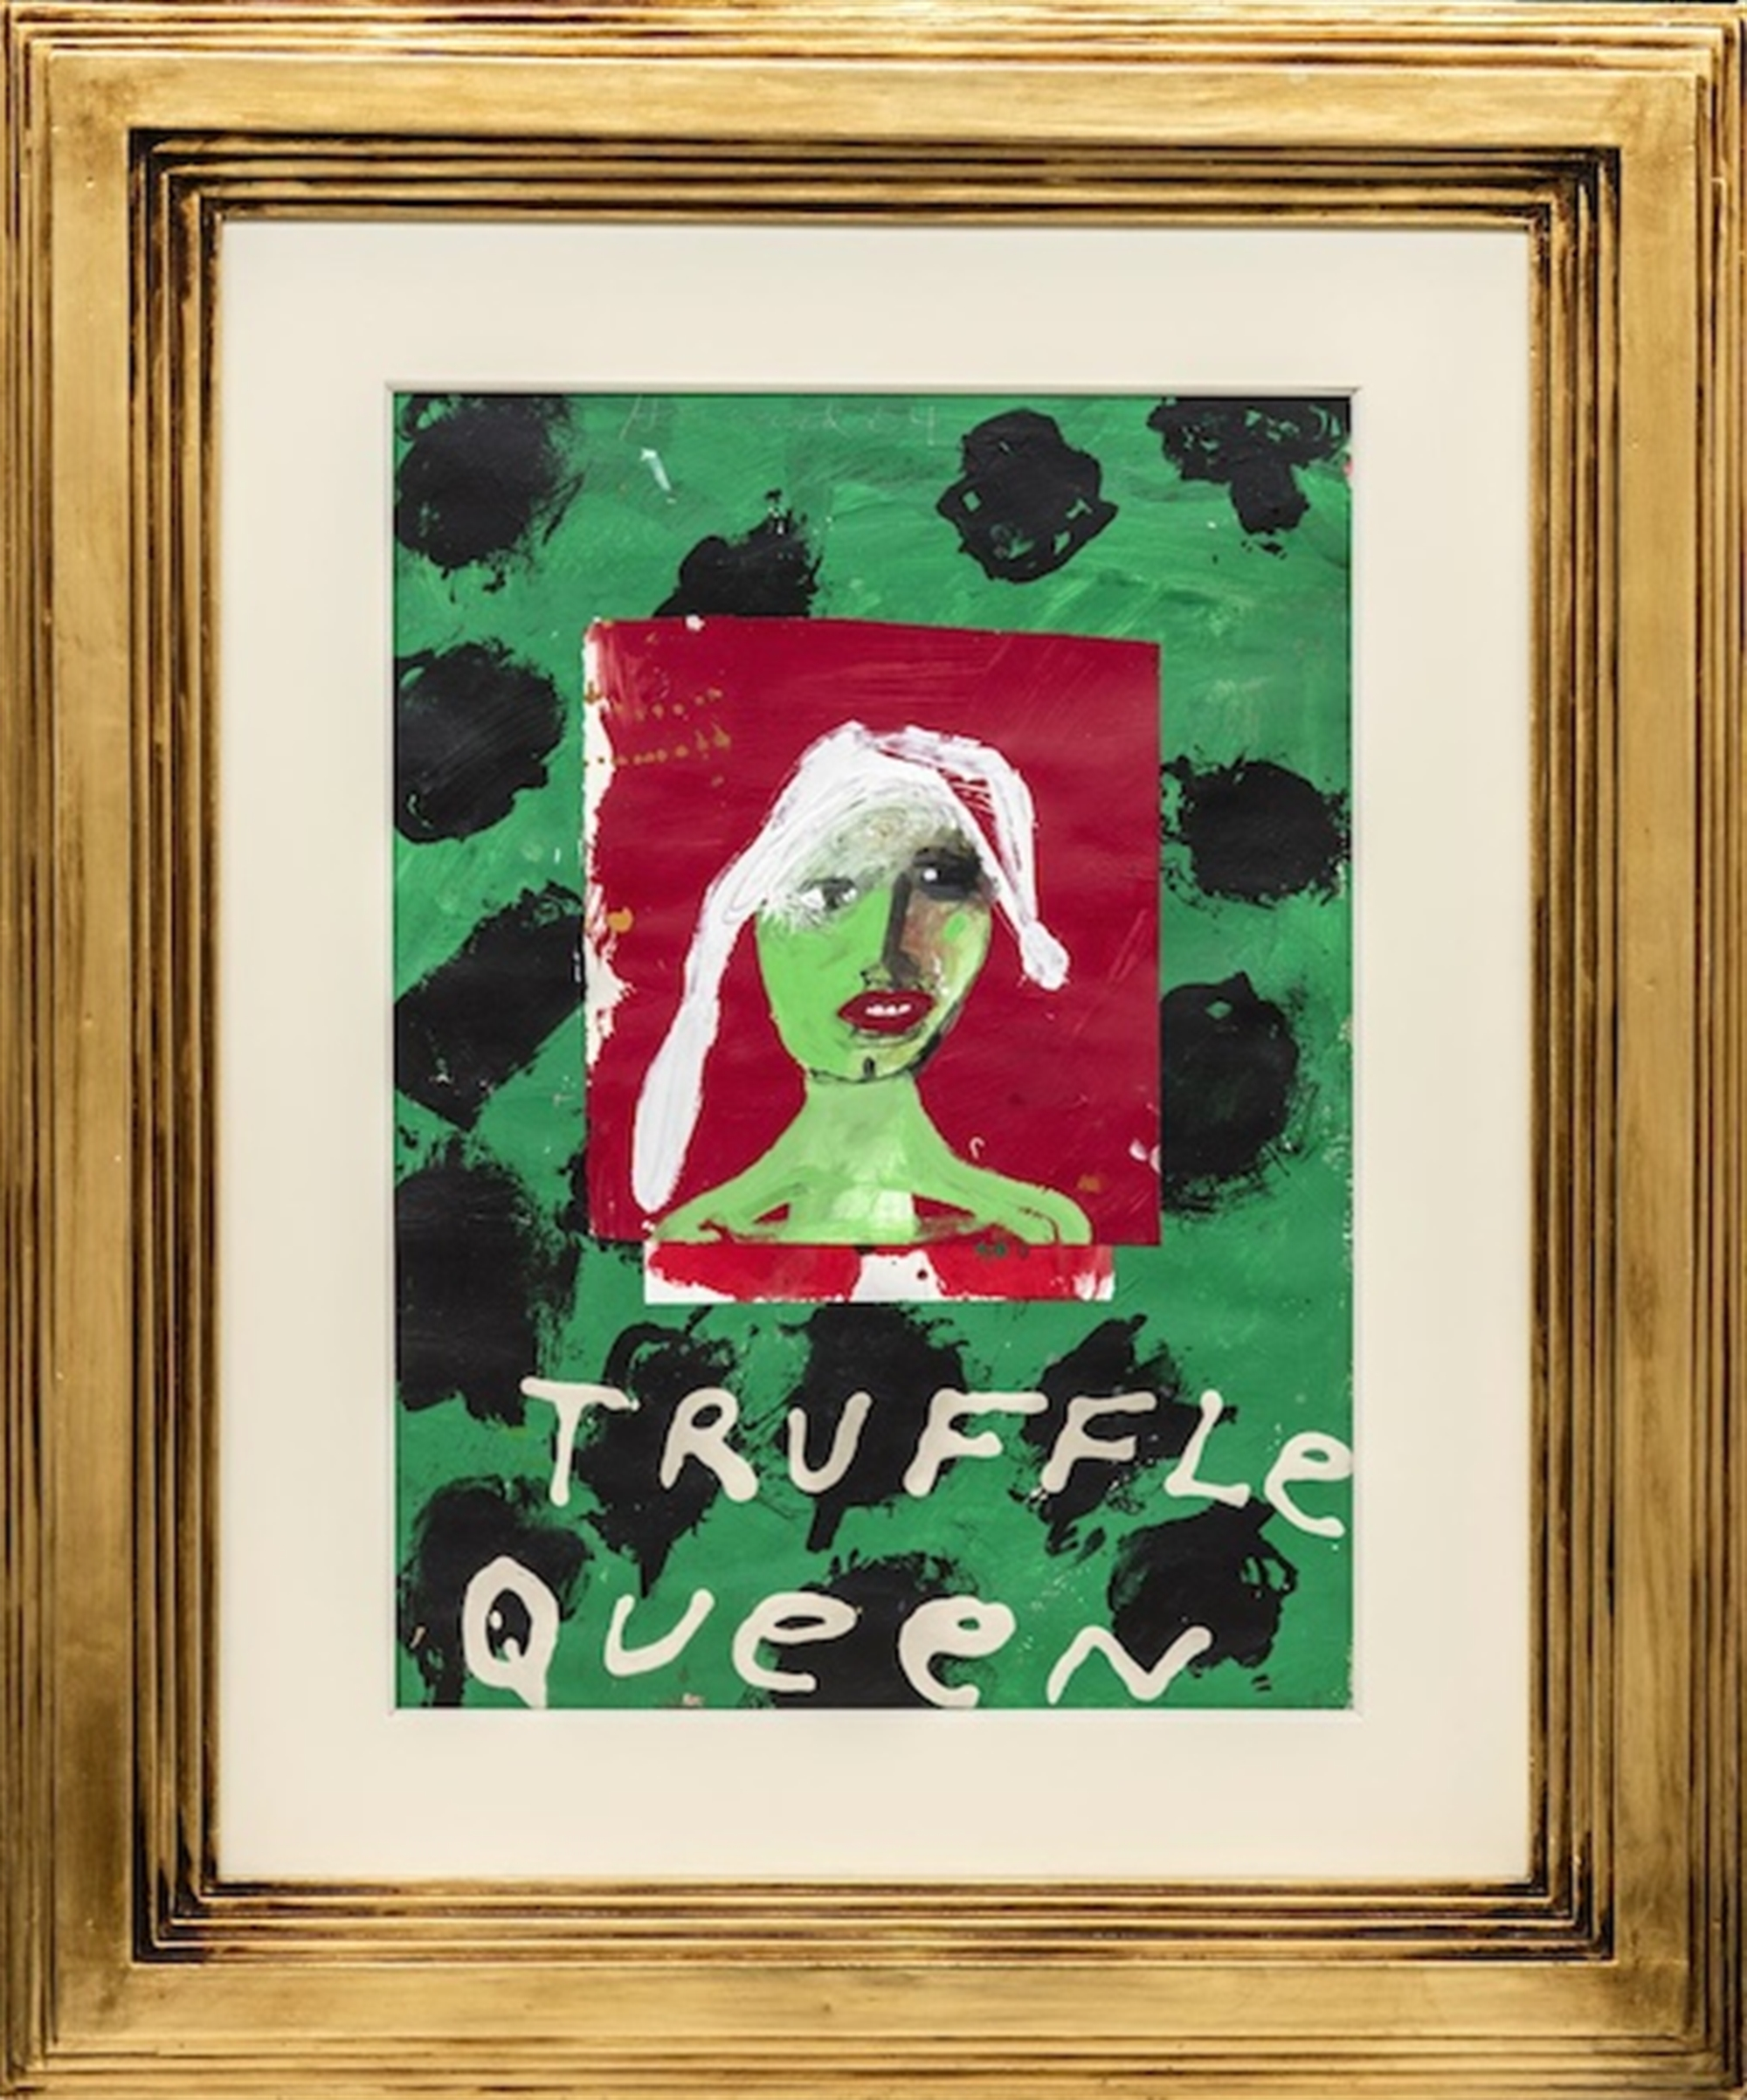 Truffle Queen by James Havard